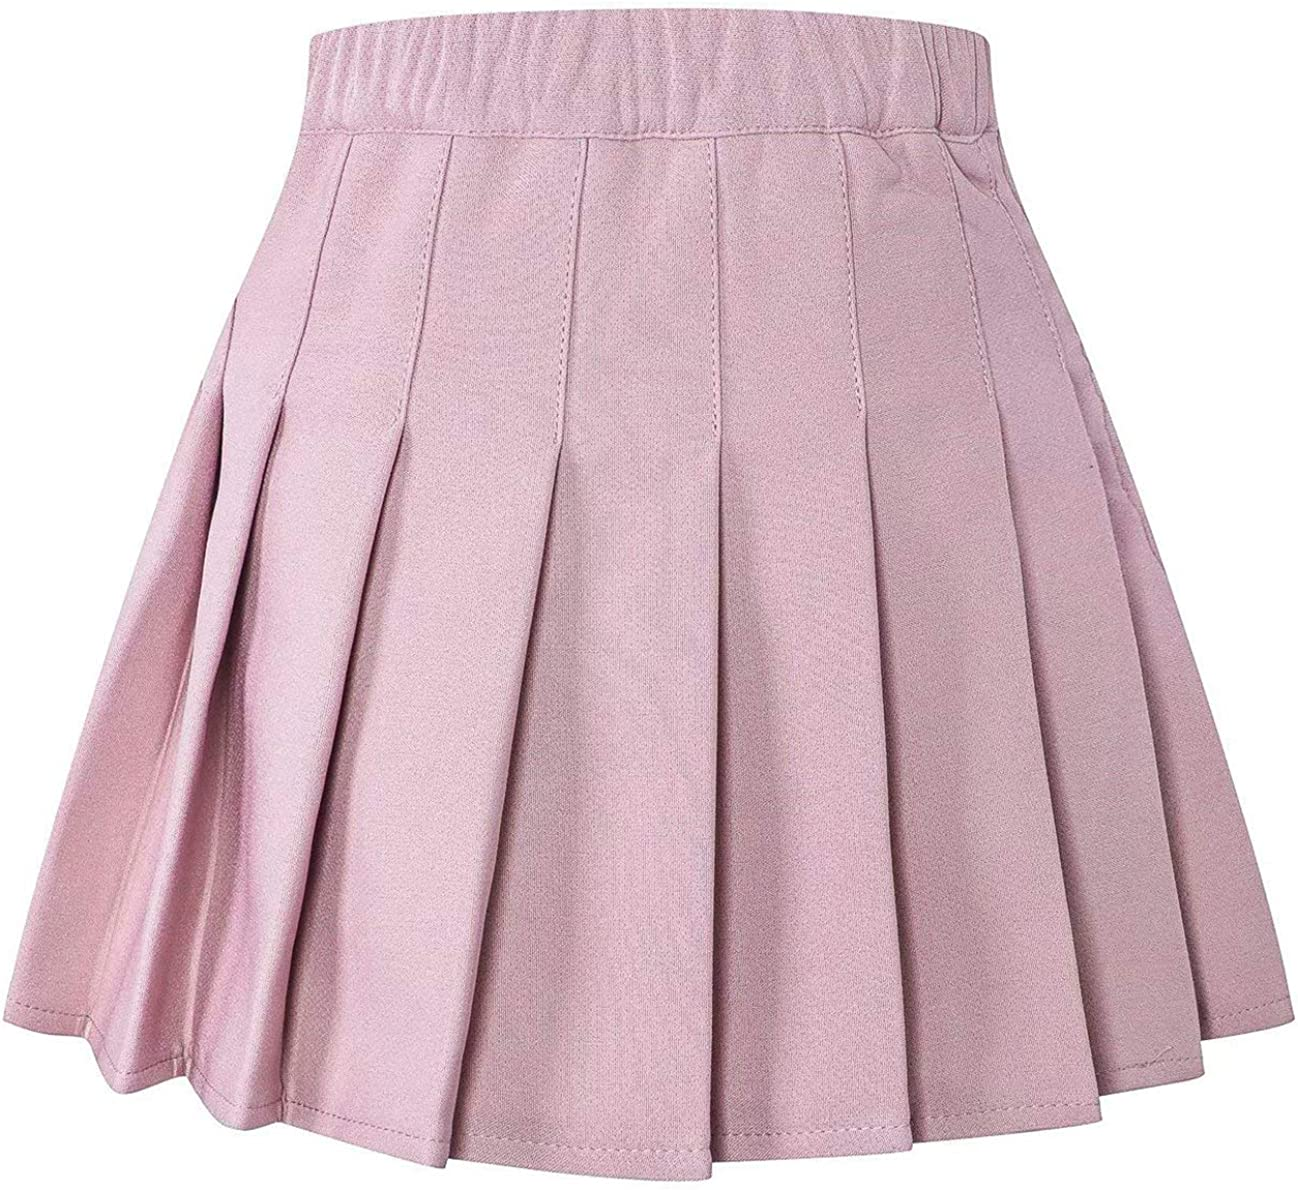 2 Years SANGTREE Girls /& Womens Pleated Skirt with Comfy Stretchy Band Adult XL